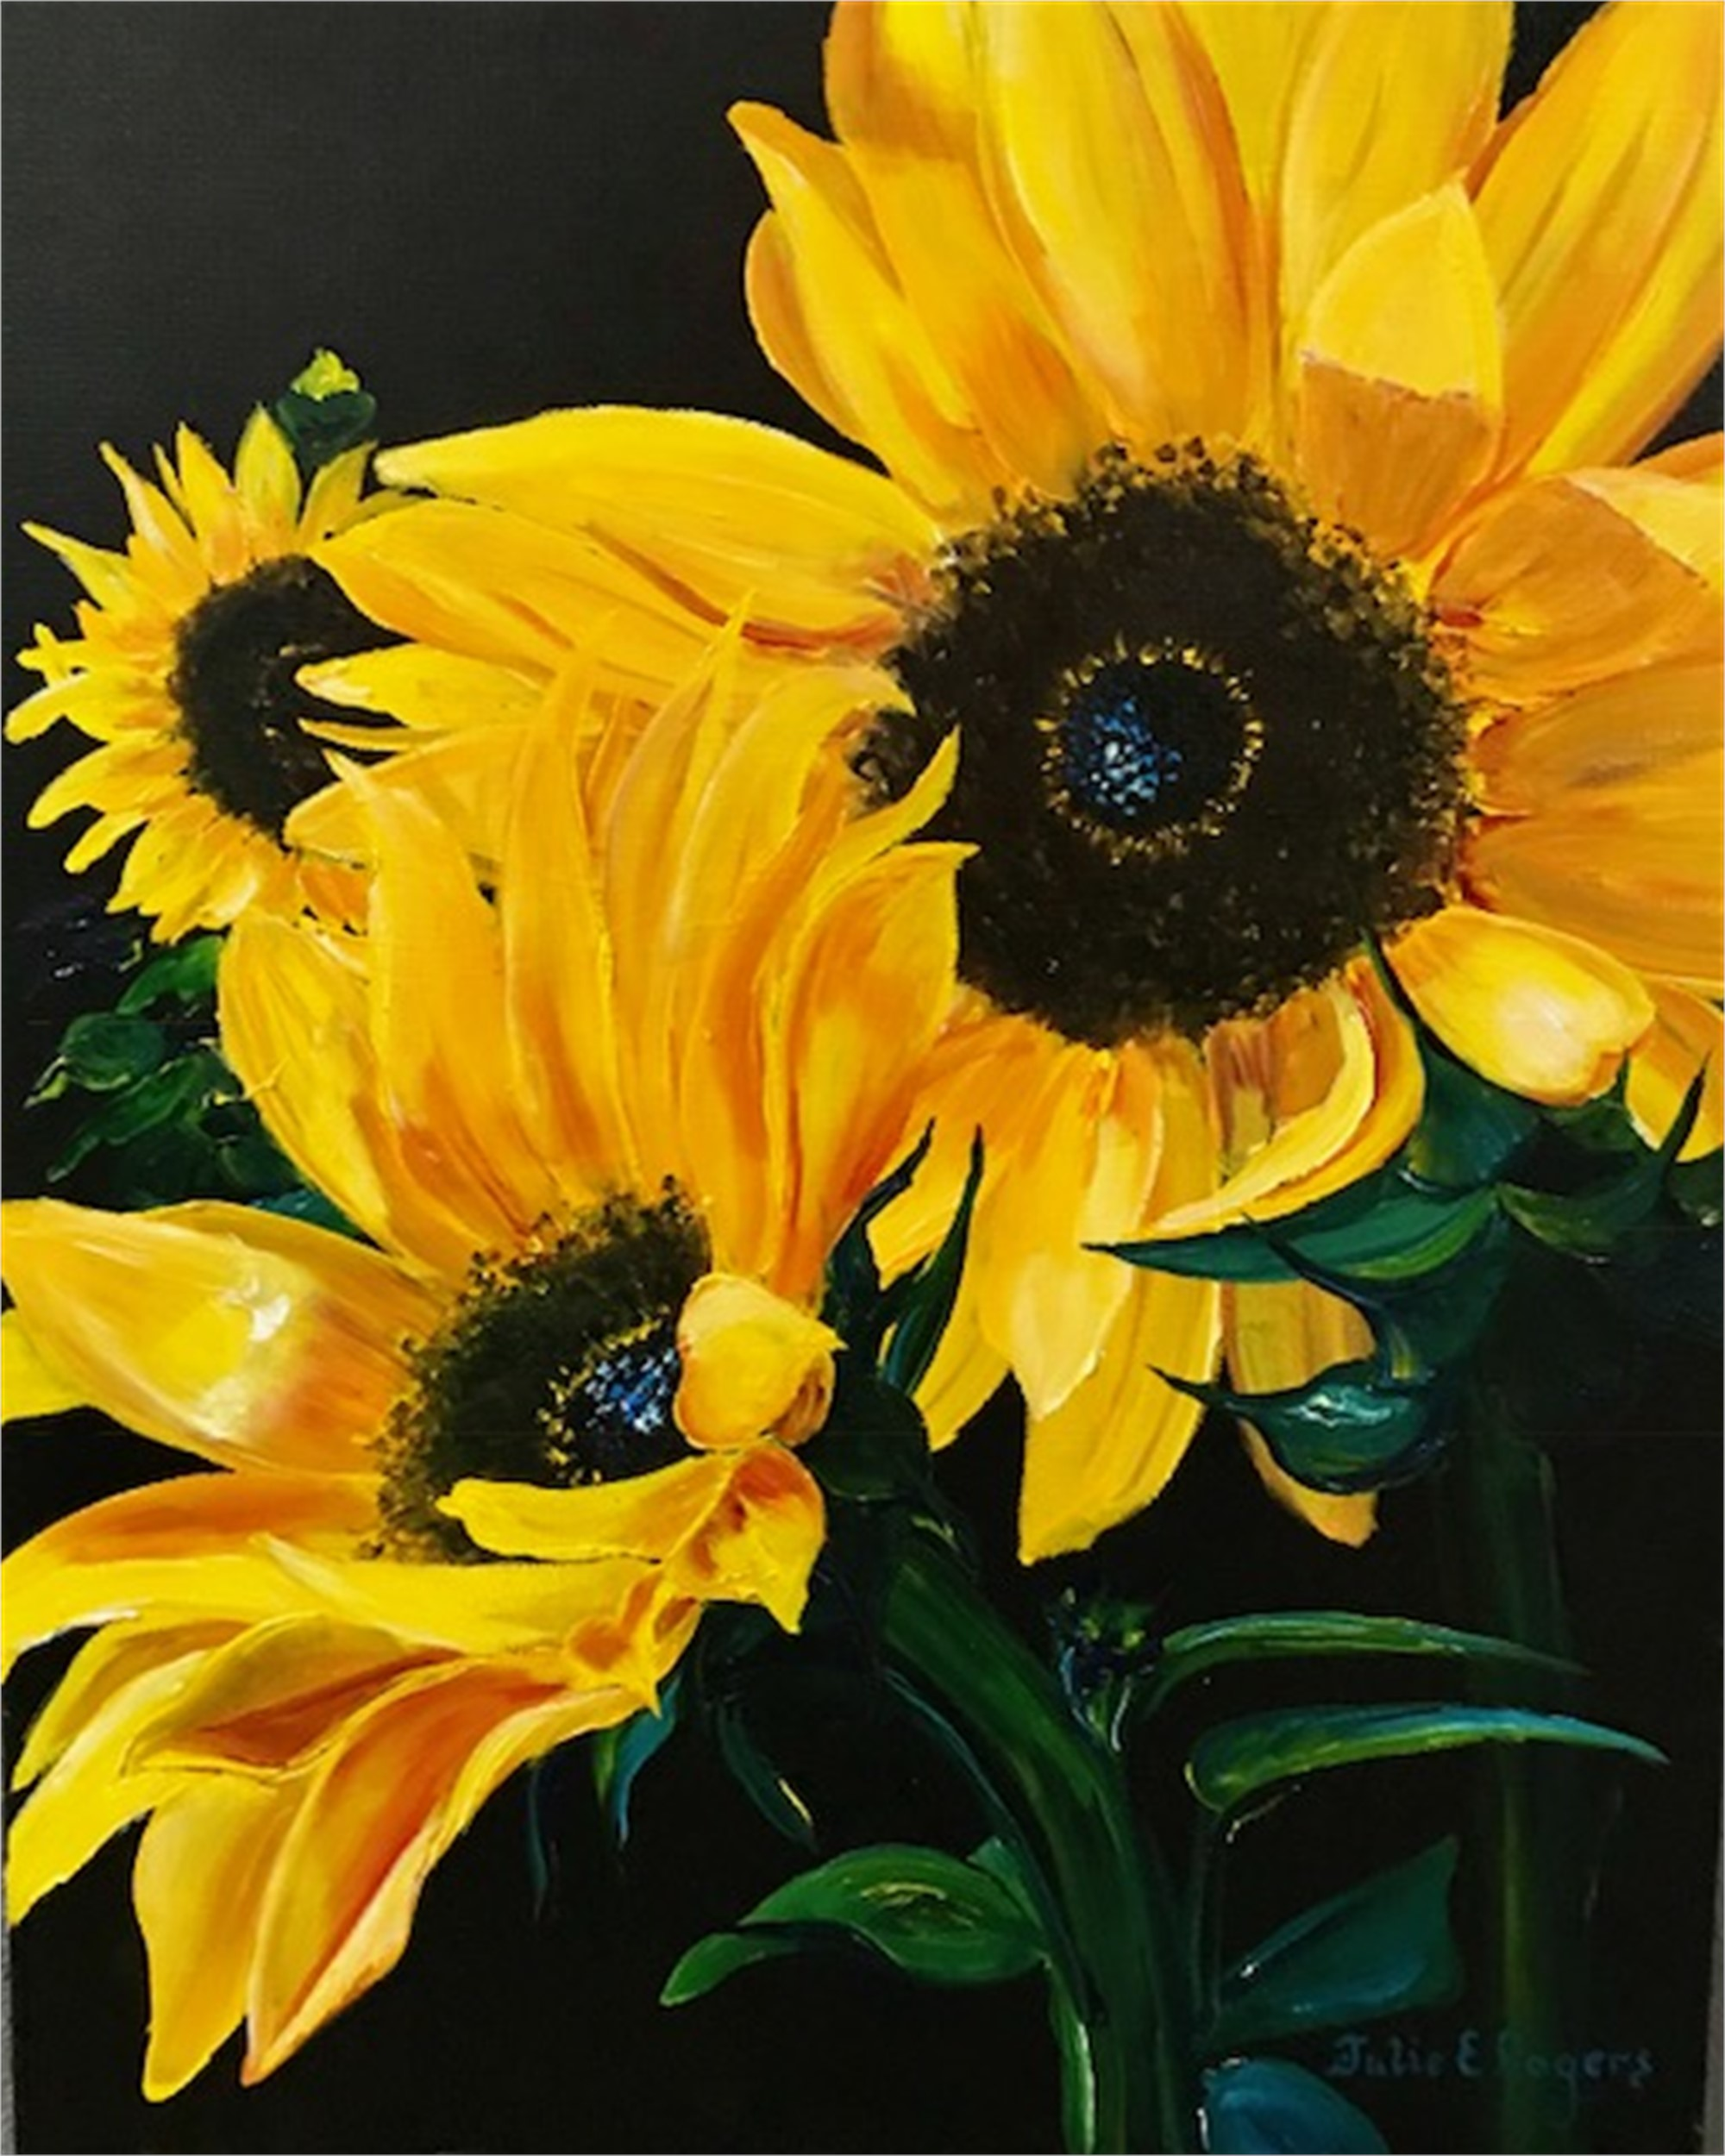 Sunflowers #3, 2018 by Julie Rogers